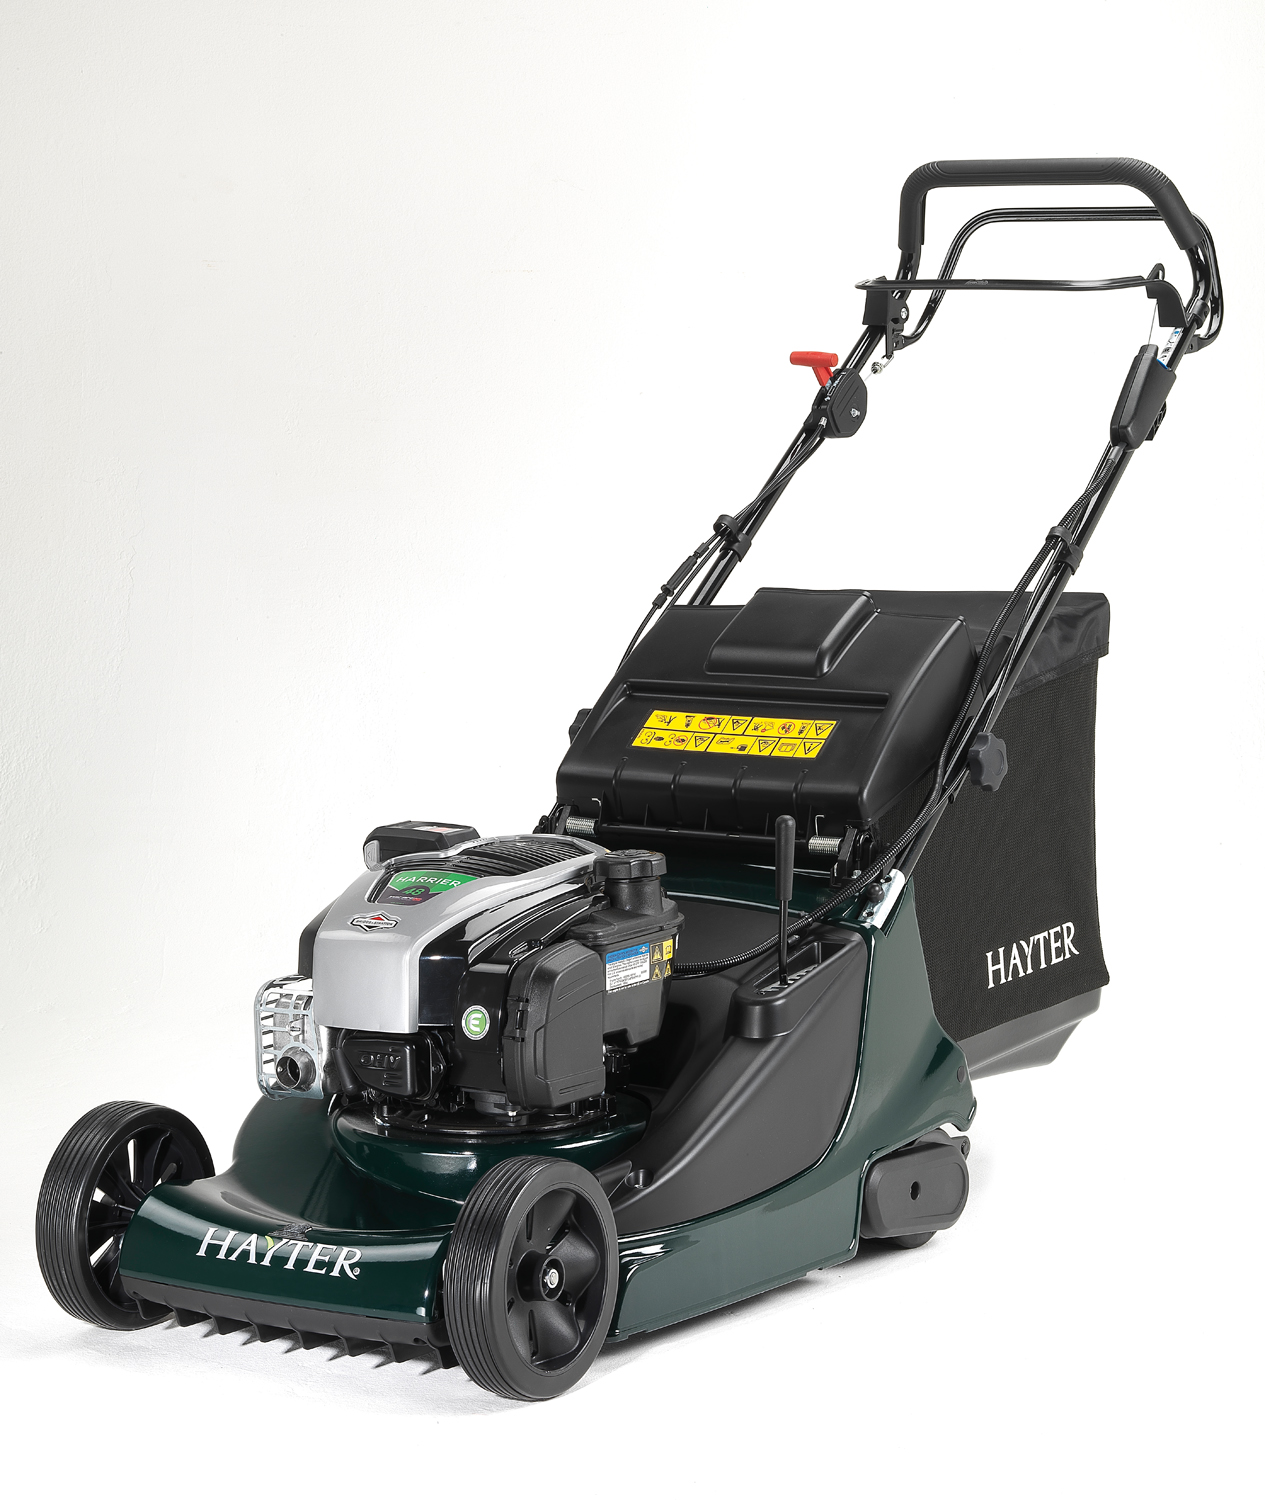 HAYTER Harrier 48 Petrol Lawnmower (Model 476A)